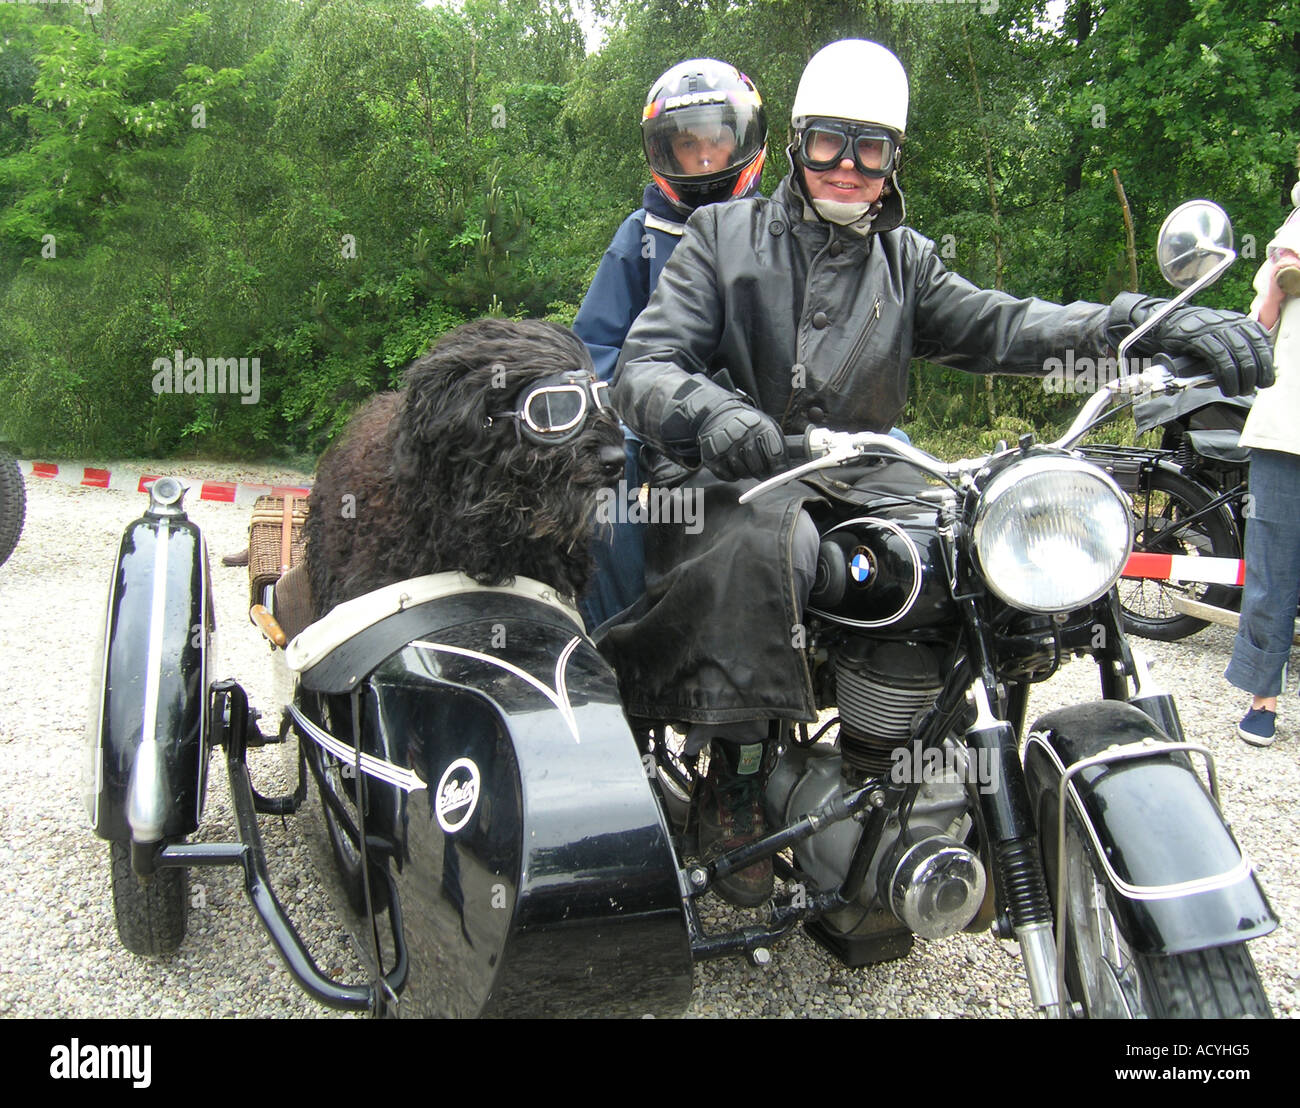 Couple On Vintage BMW Motorbike With Fluffy Black Dog In